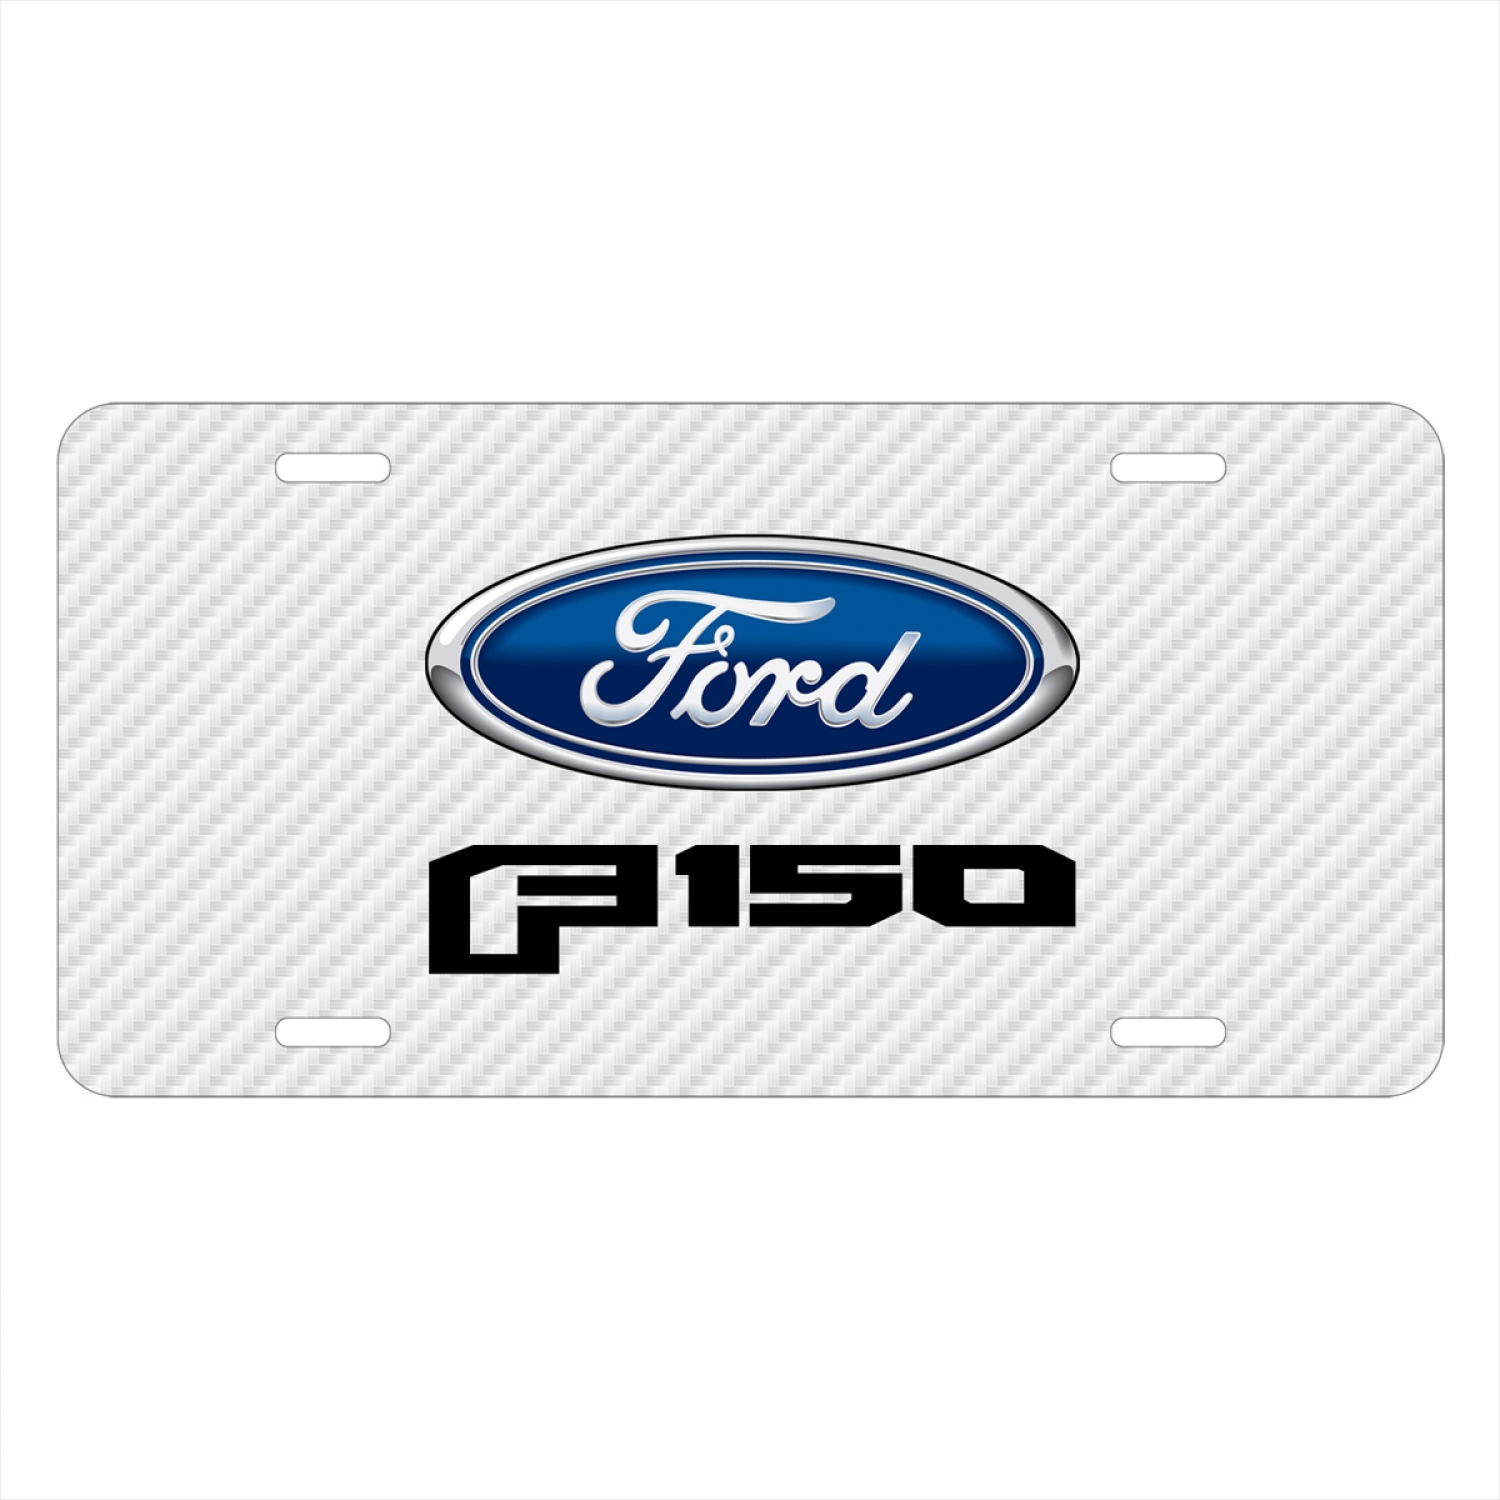 Ford F-150 2015 to 2017 White Carbon Fiber Texture Graphic UV Metal License Plate